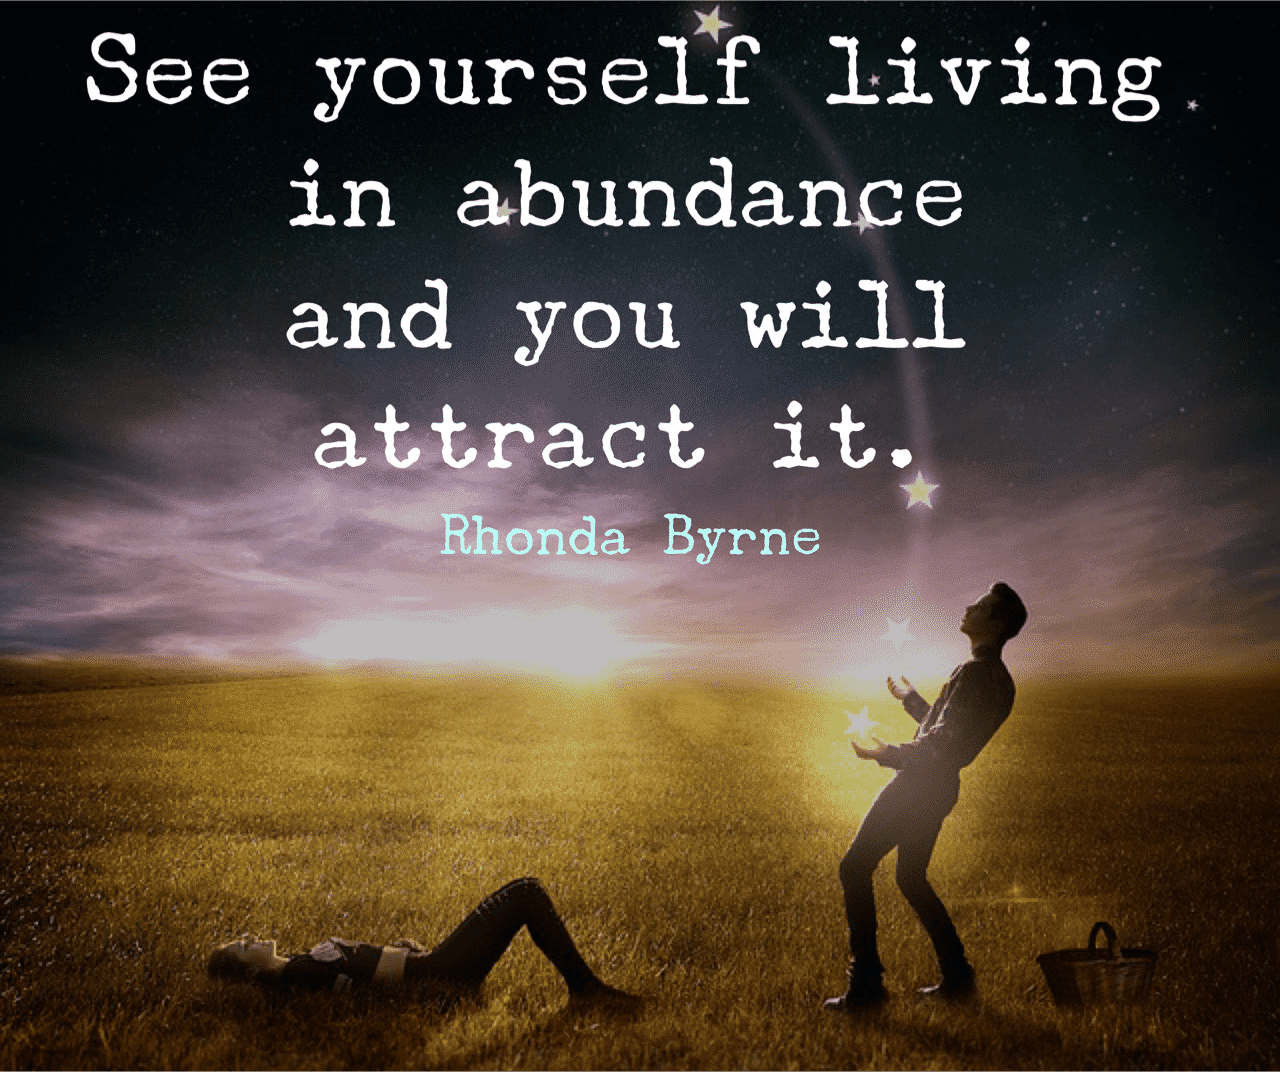 Laws Of Attraction Quotes The Very Best Law Of Attraction Quotes